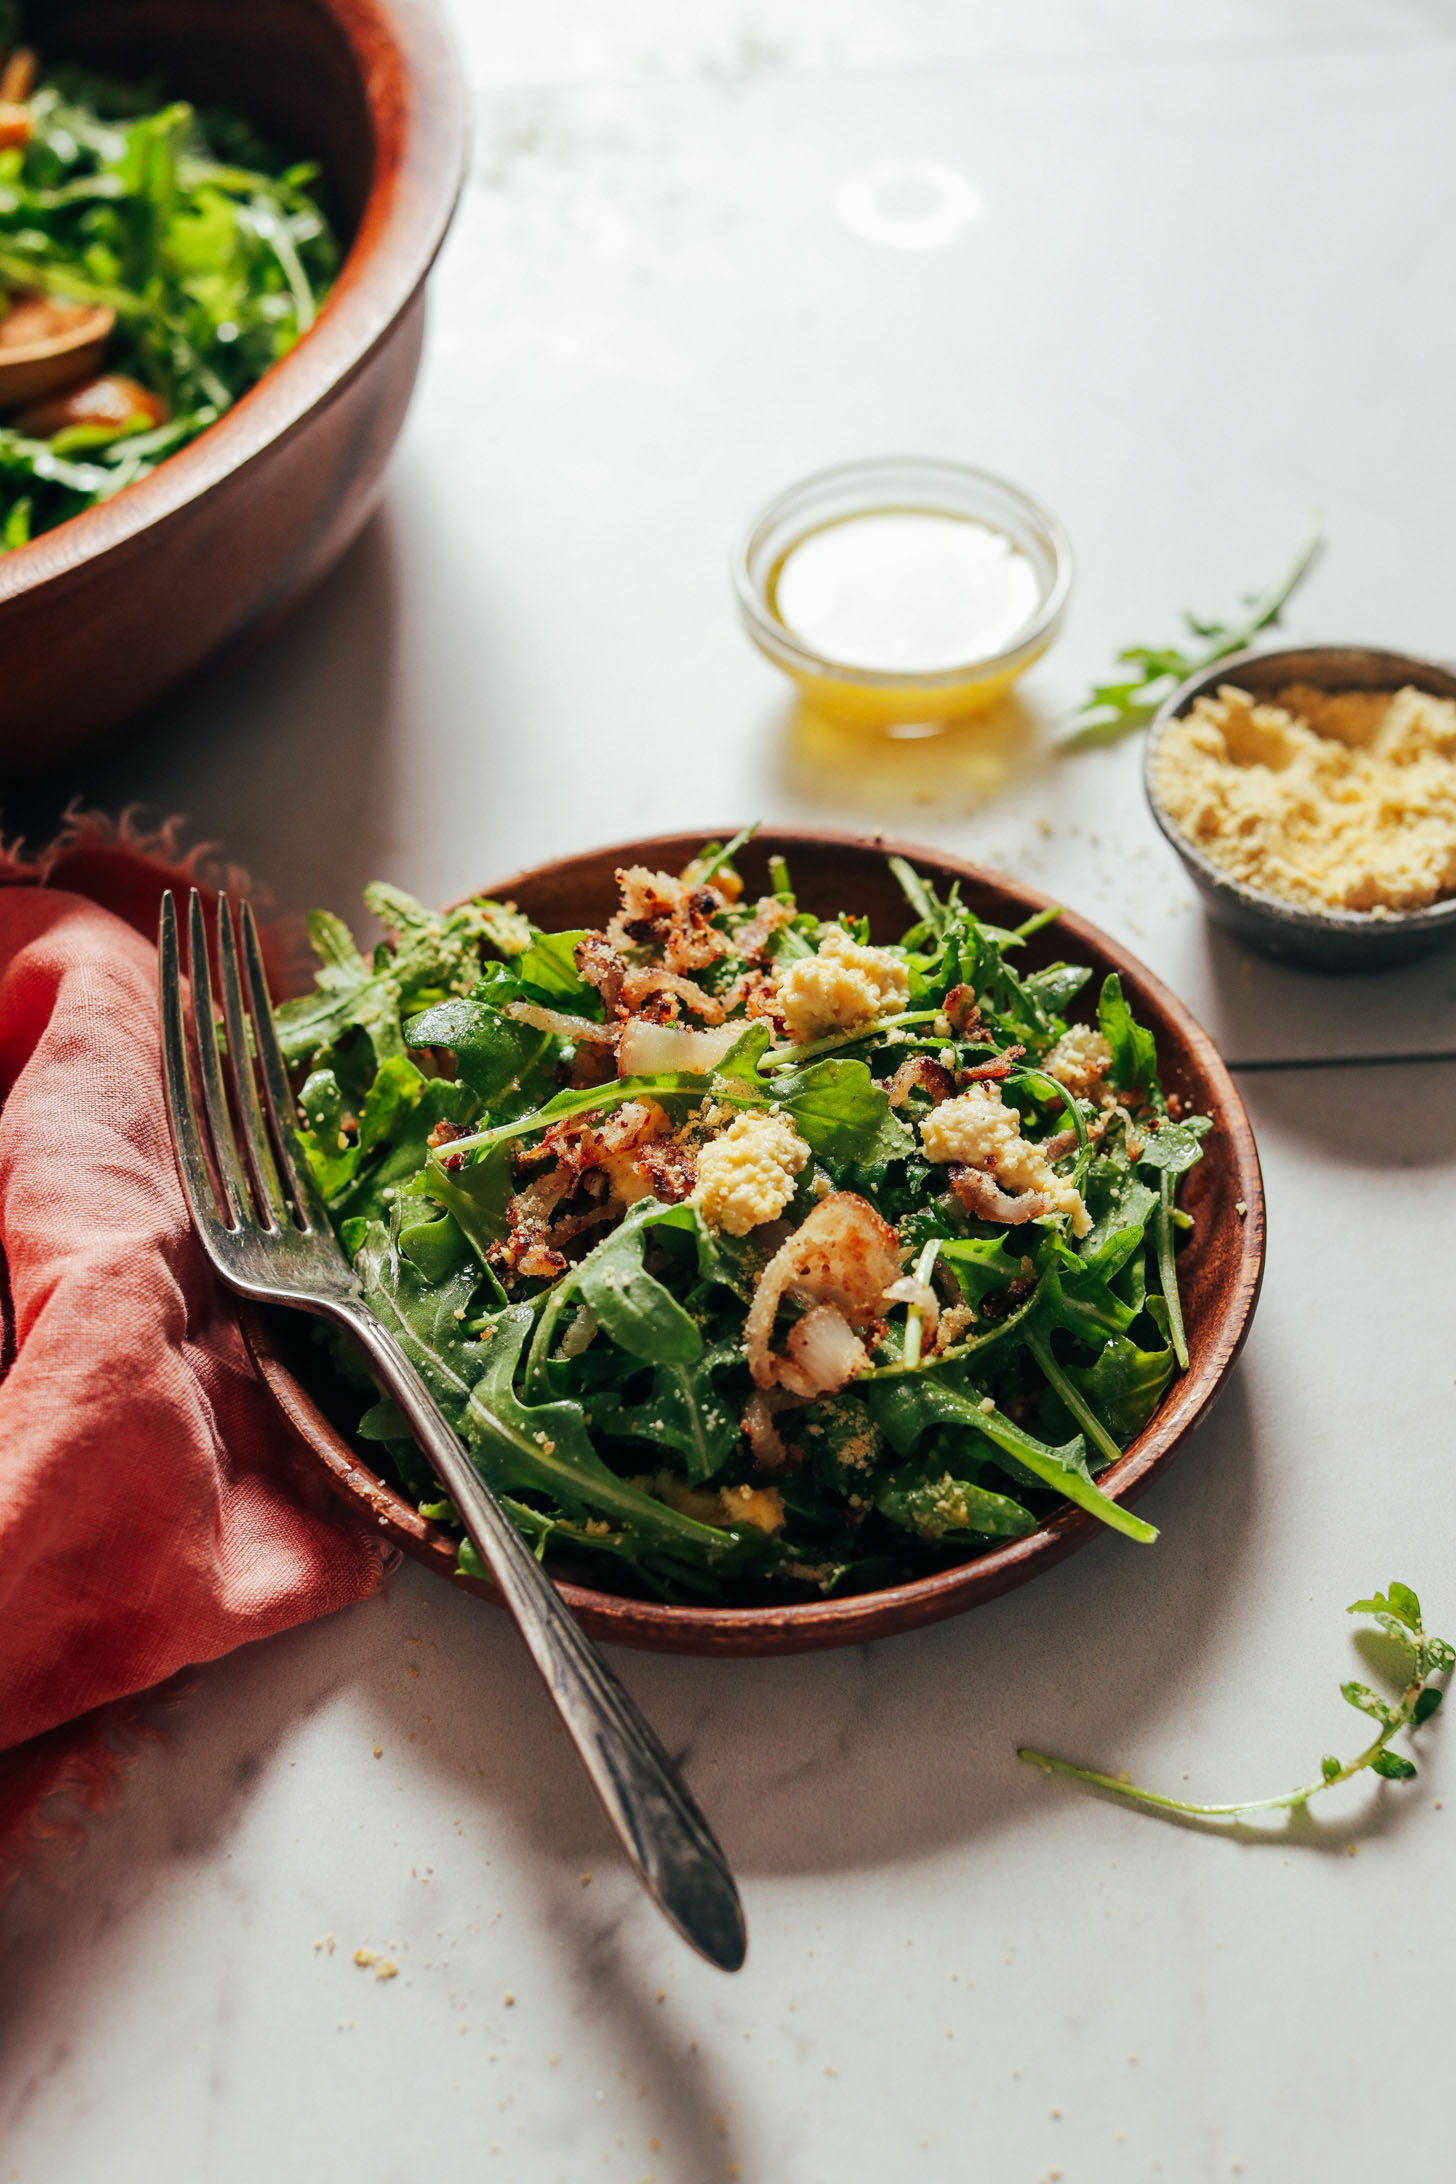 Wooden salad plate with a serving of our Lemony Arugula Salad with Crispy Shallot recipe